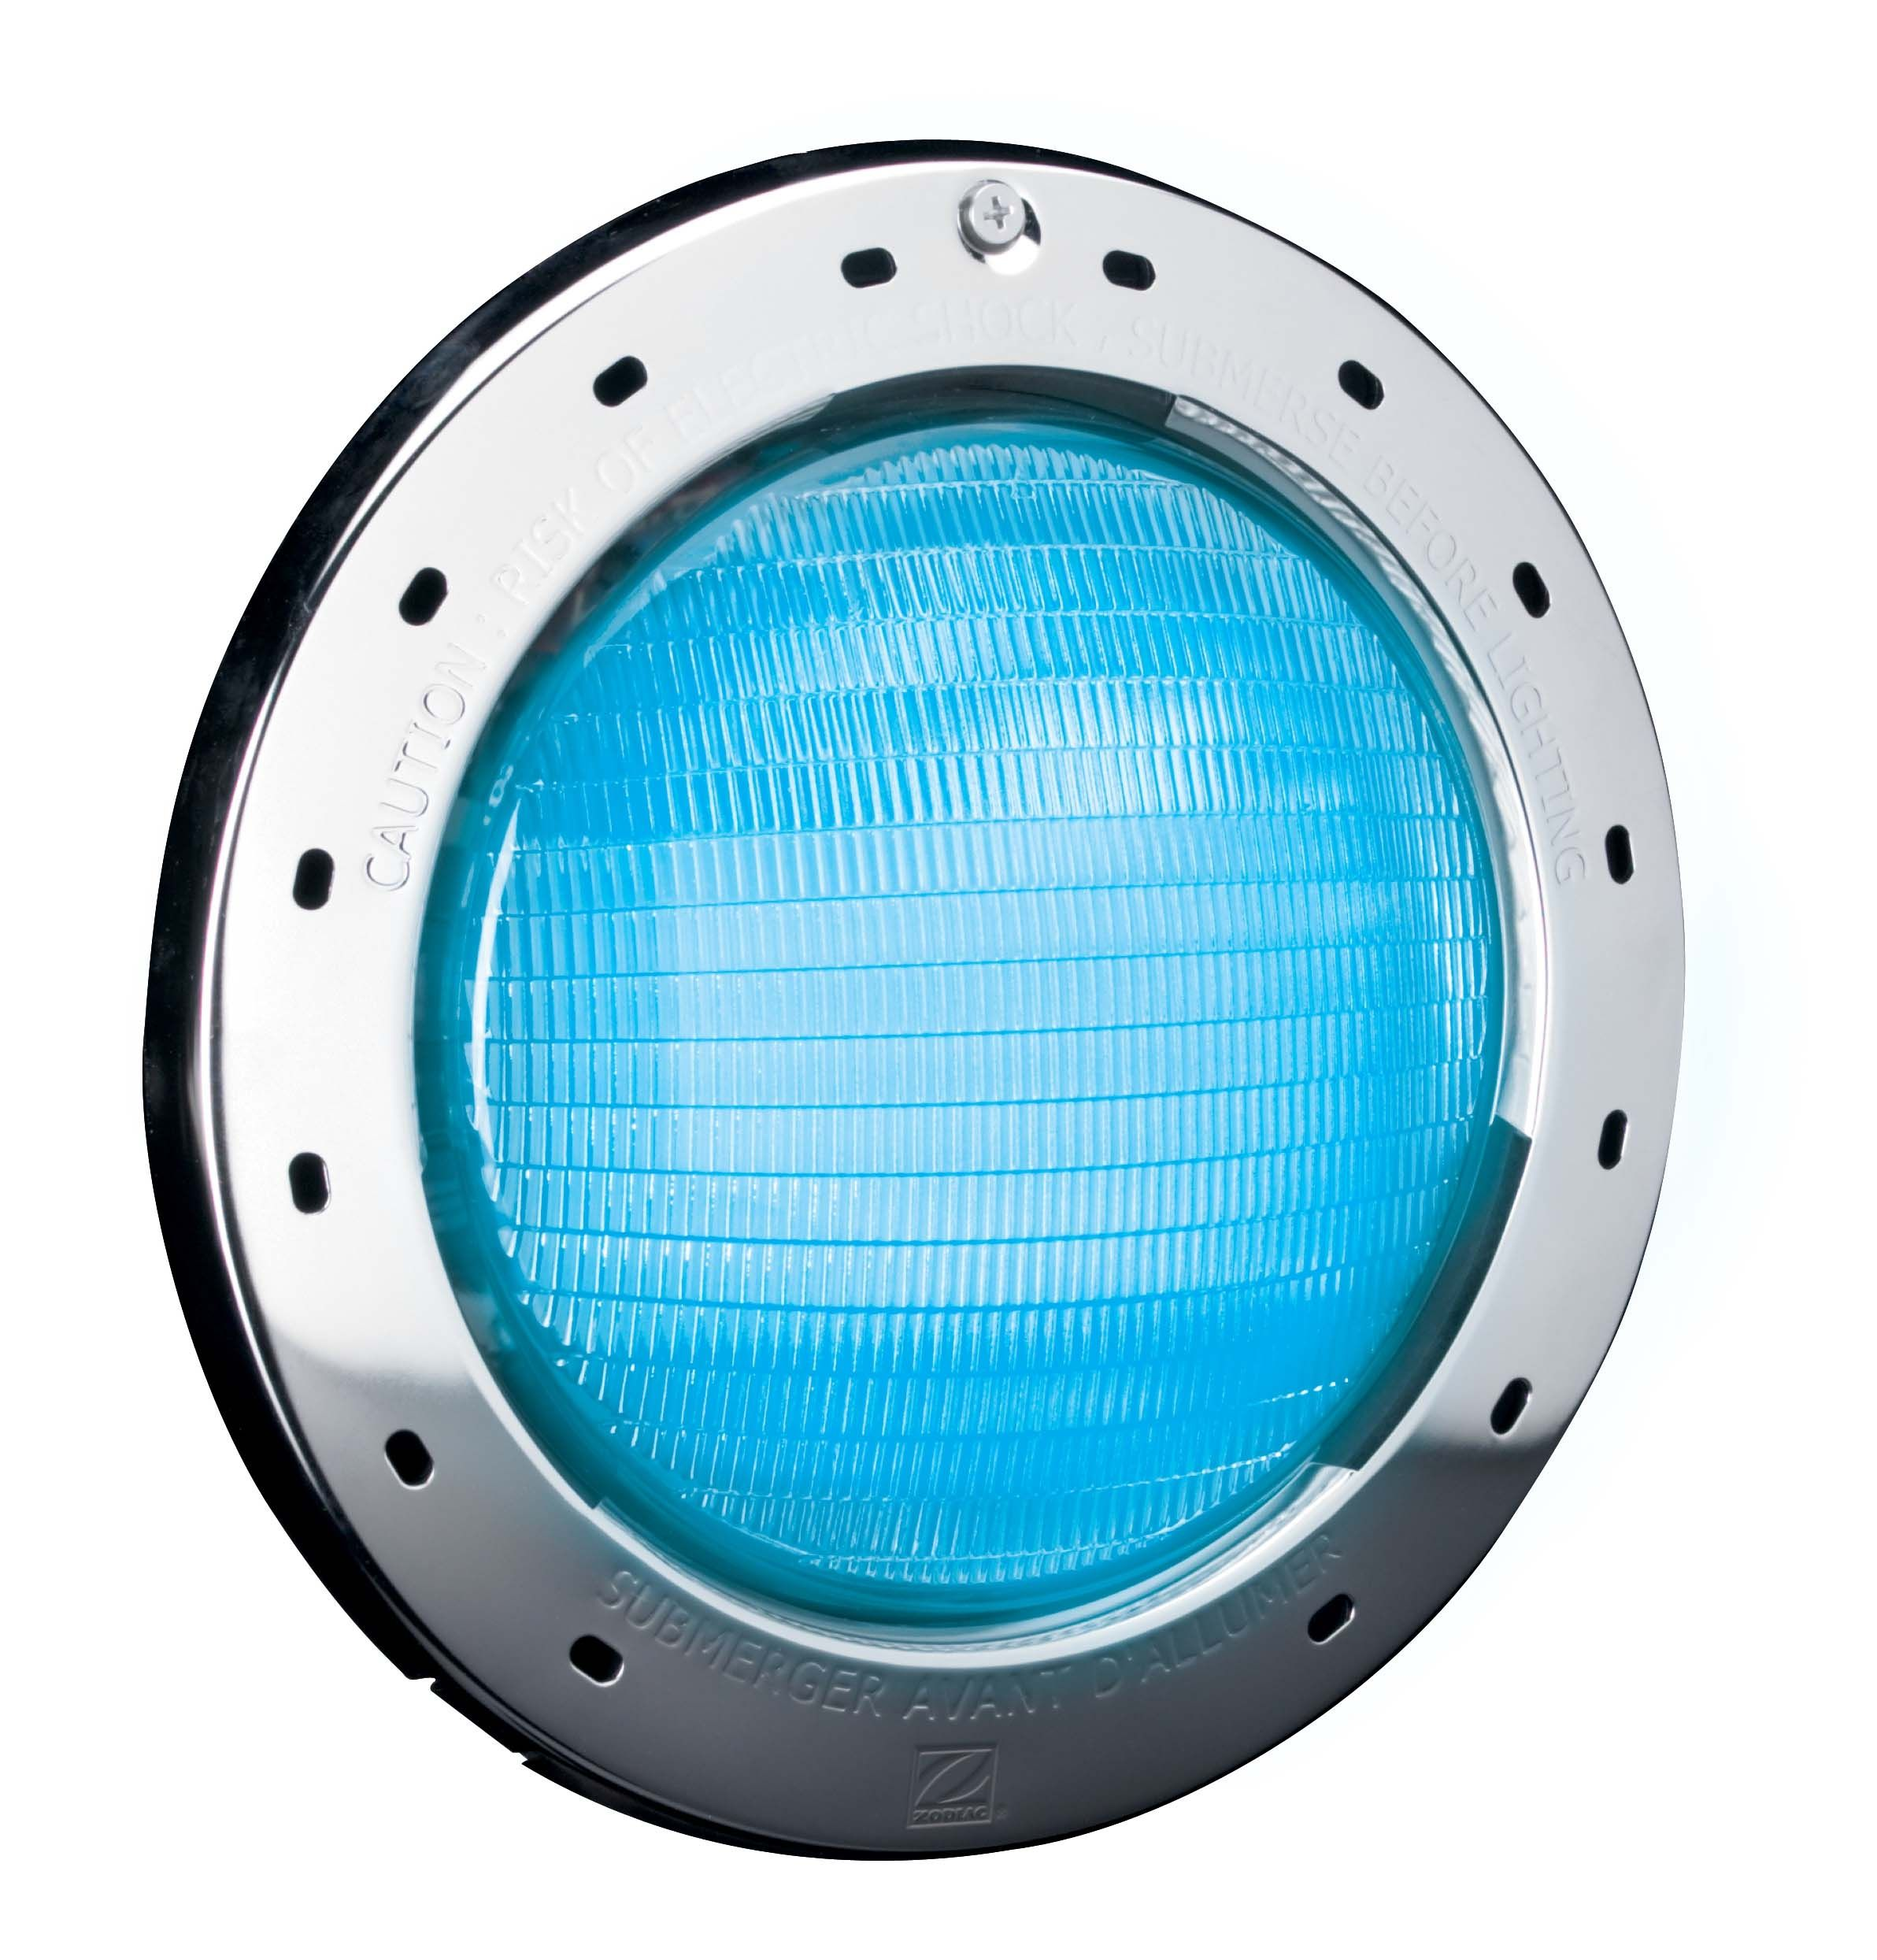 12 volt led pool light fixture httpscartclub pinterest 12 volt led pool light fixture one of the truly great things about led lighting is that its not just available to builders of boats that are new arubaitofo Image collections